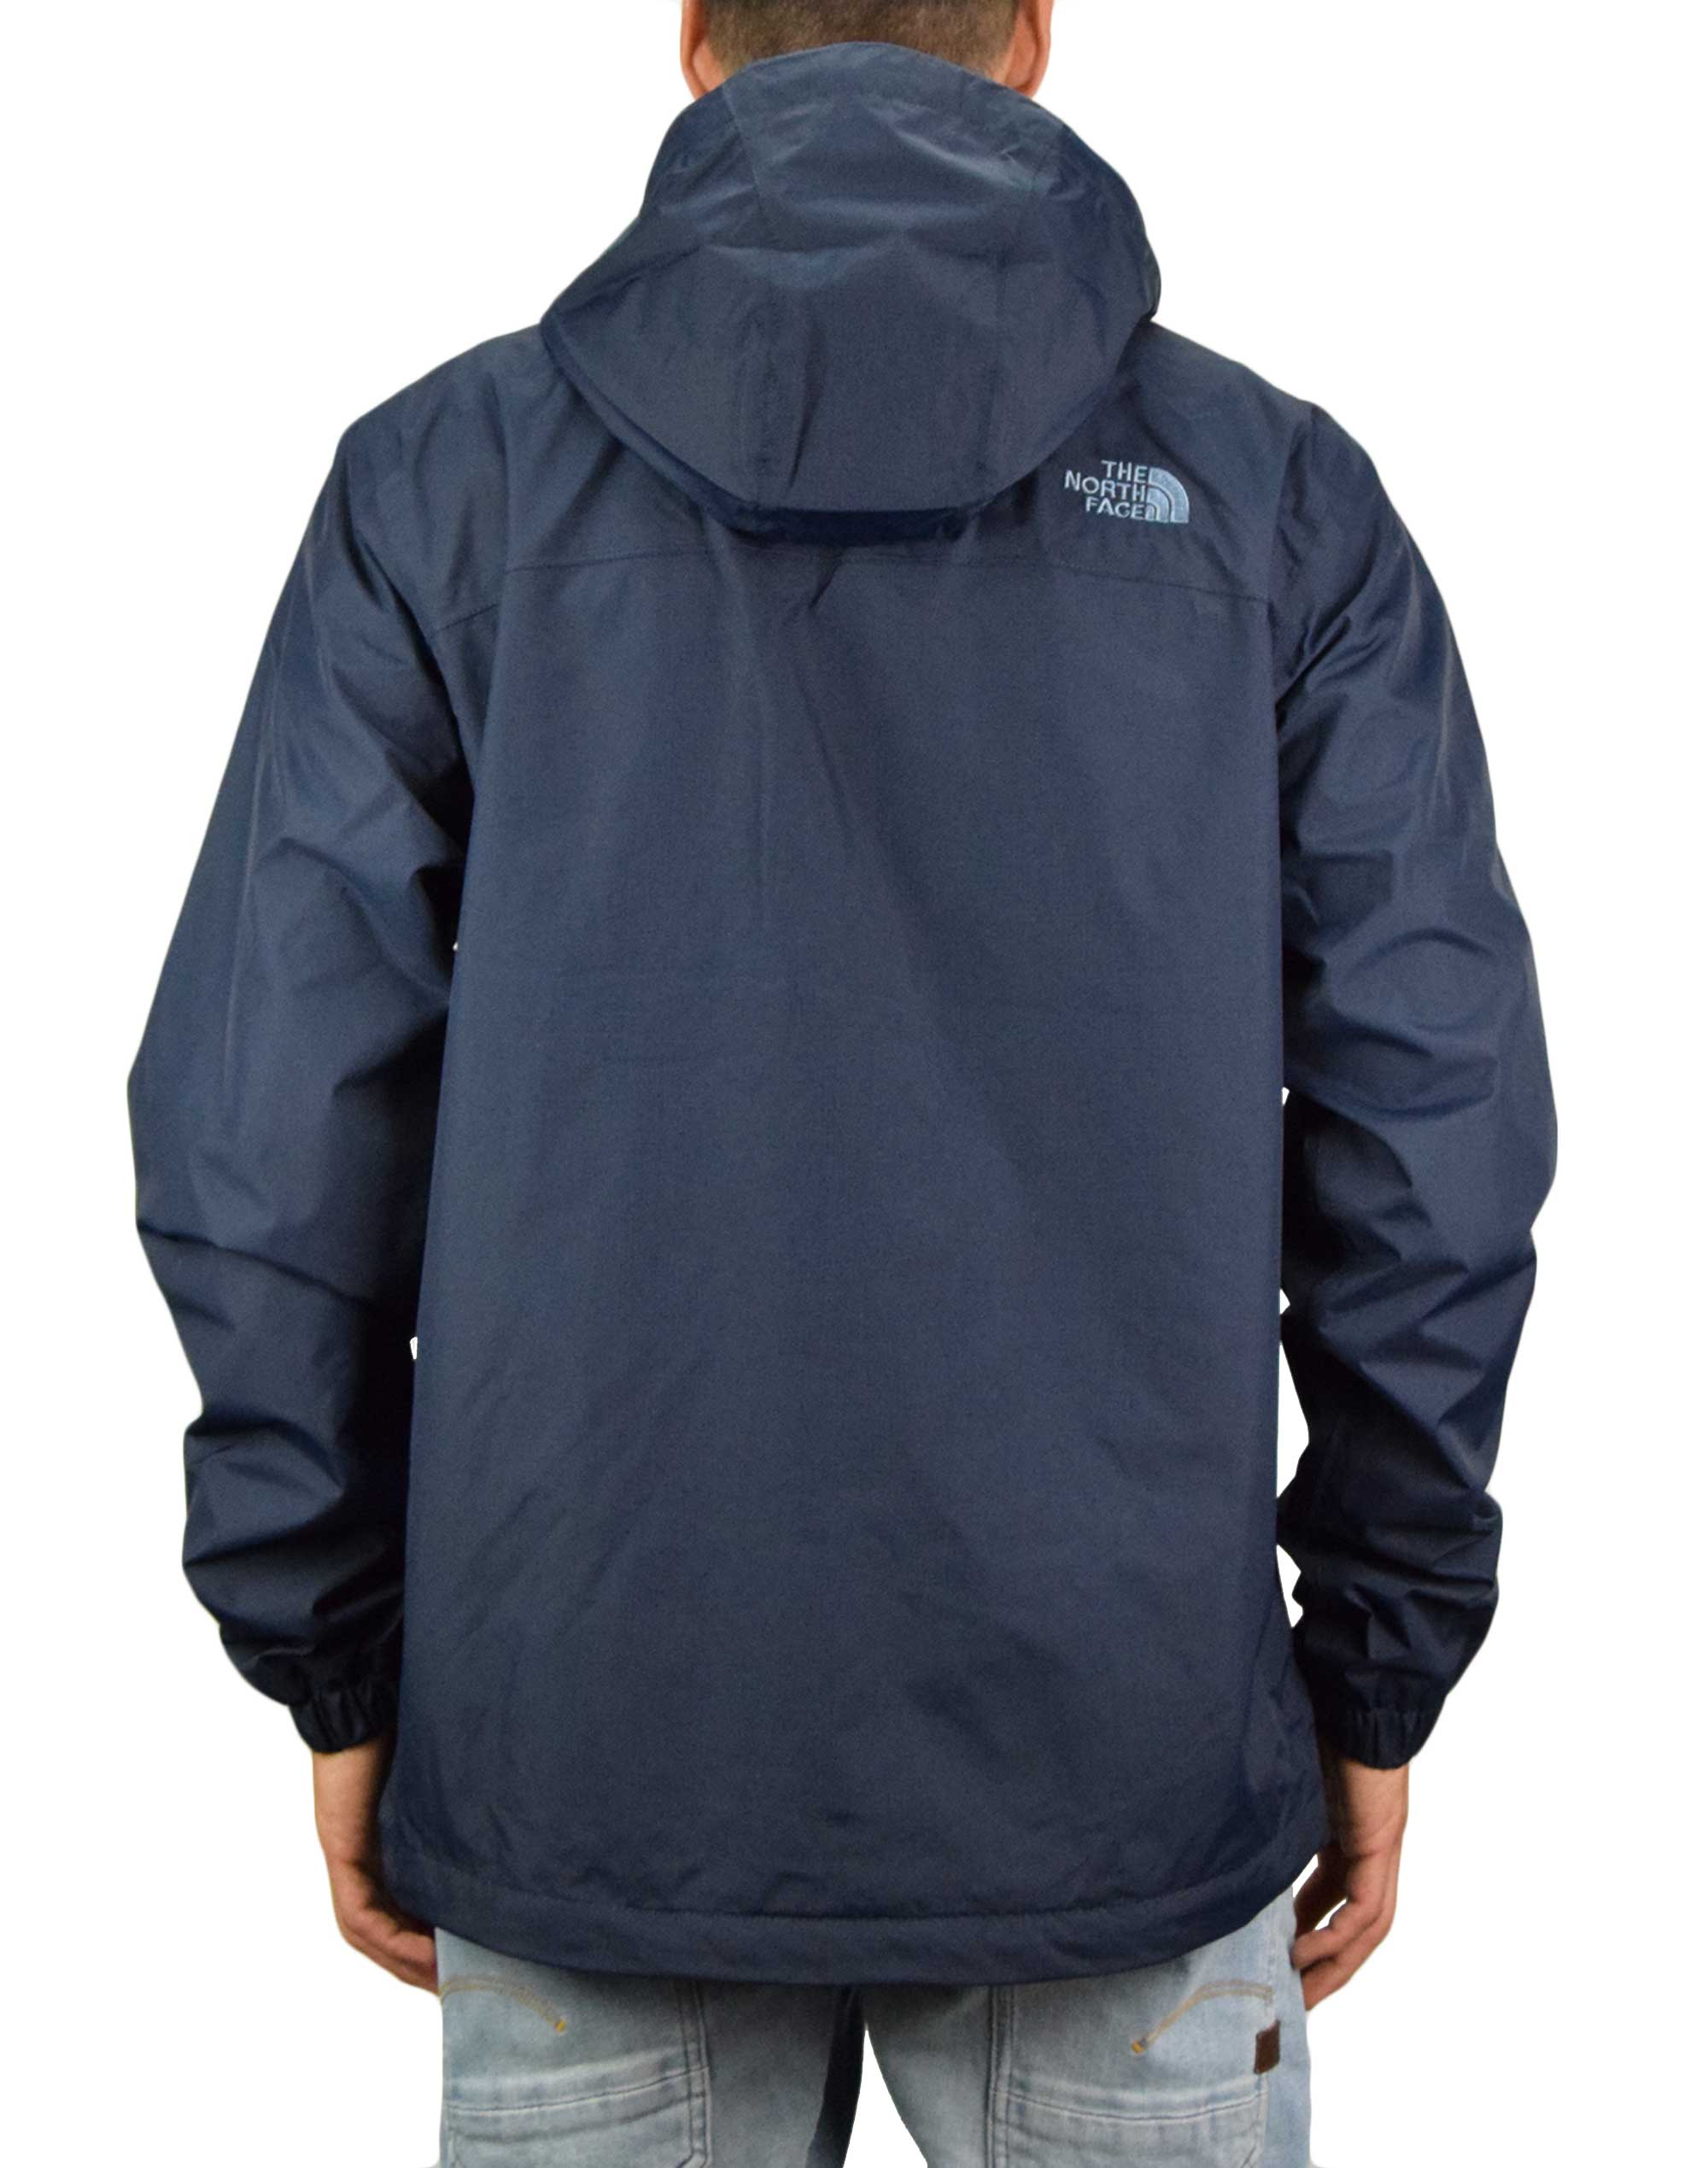 The North Face Resolve 2 Jacket (NF0A2VD5U6R1) Urban Navy